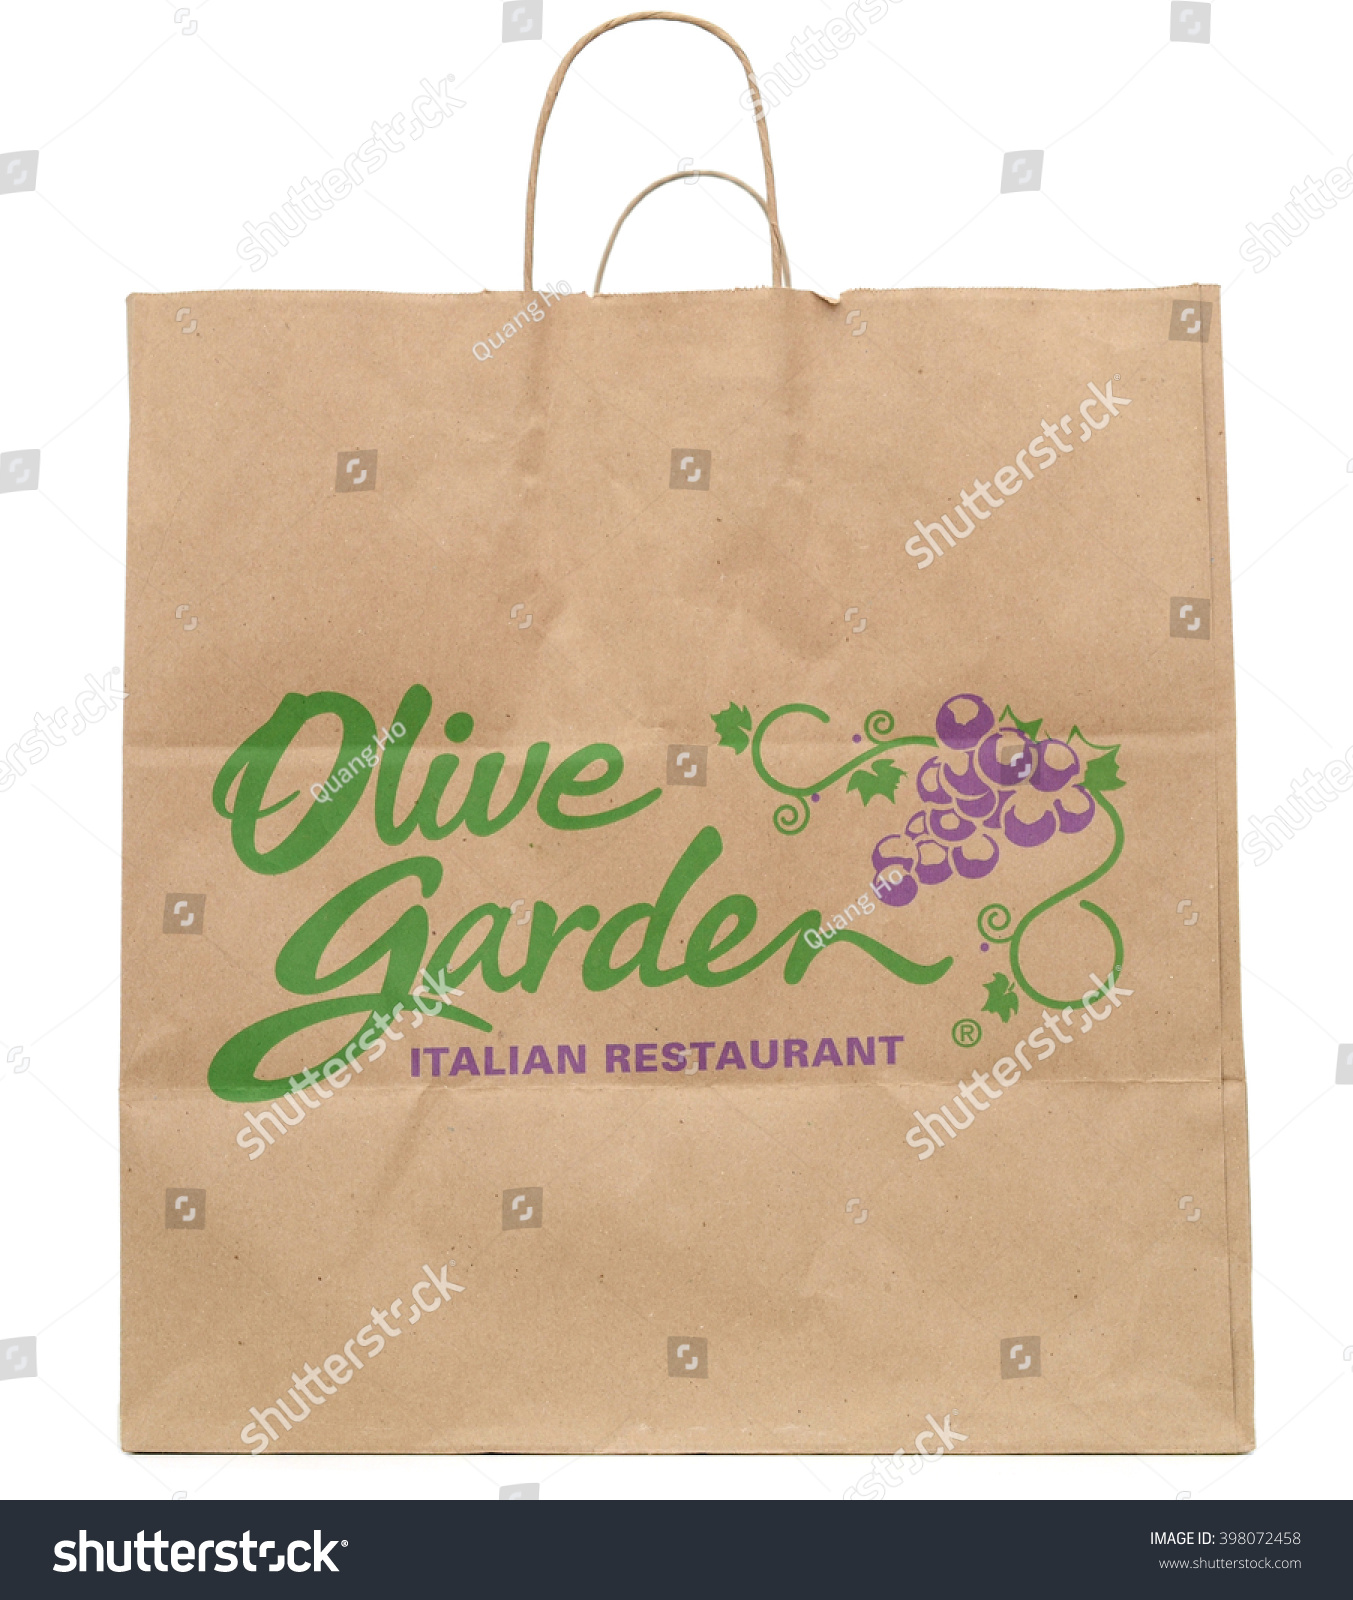 olive garden essay Learn more about community relations & philanthropy at olive garden italian restaurants we are committed to the communities we serve through hospitaliano.